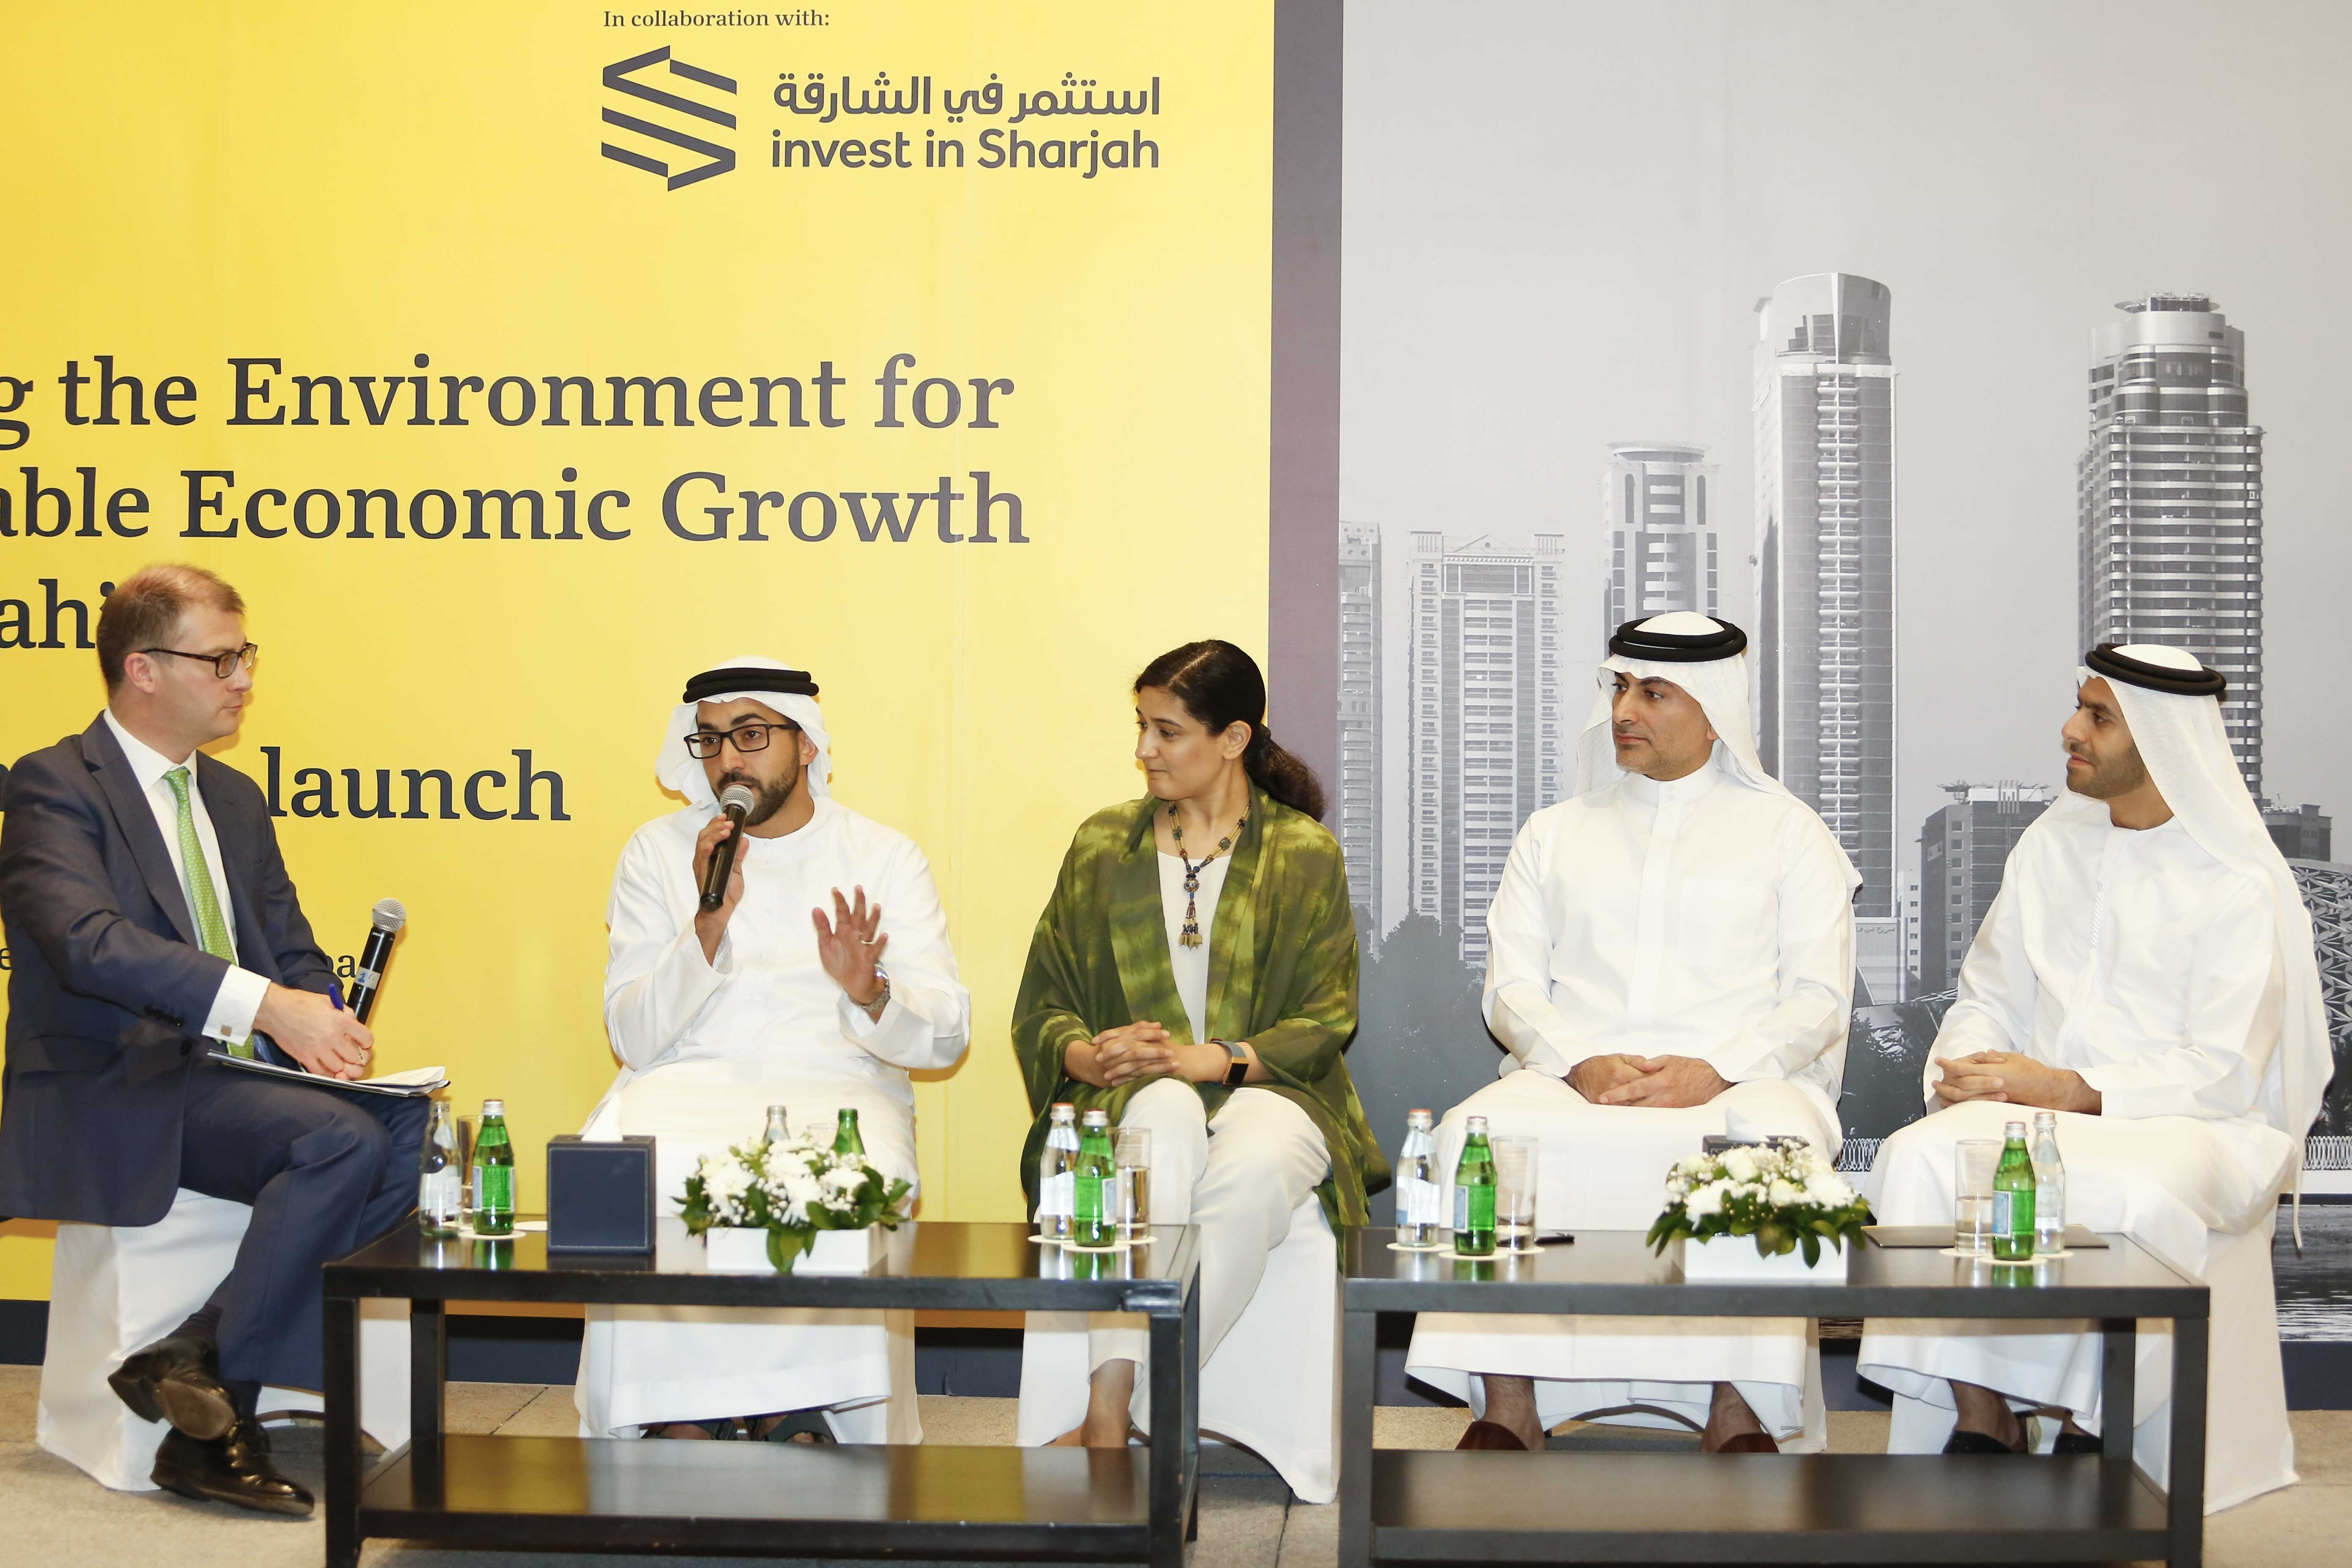 oxford business group issues report on sharjah's economic diversification4